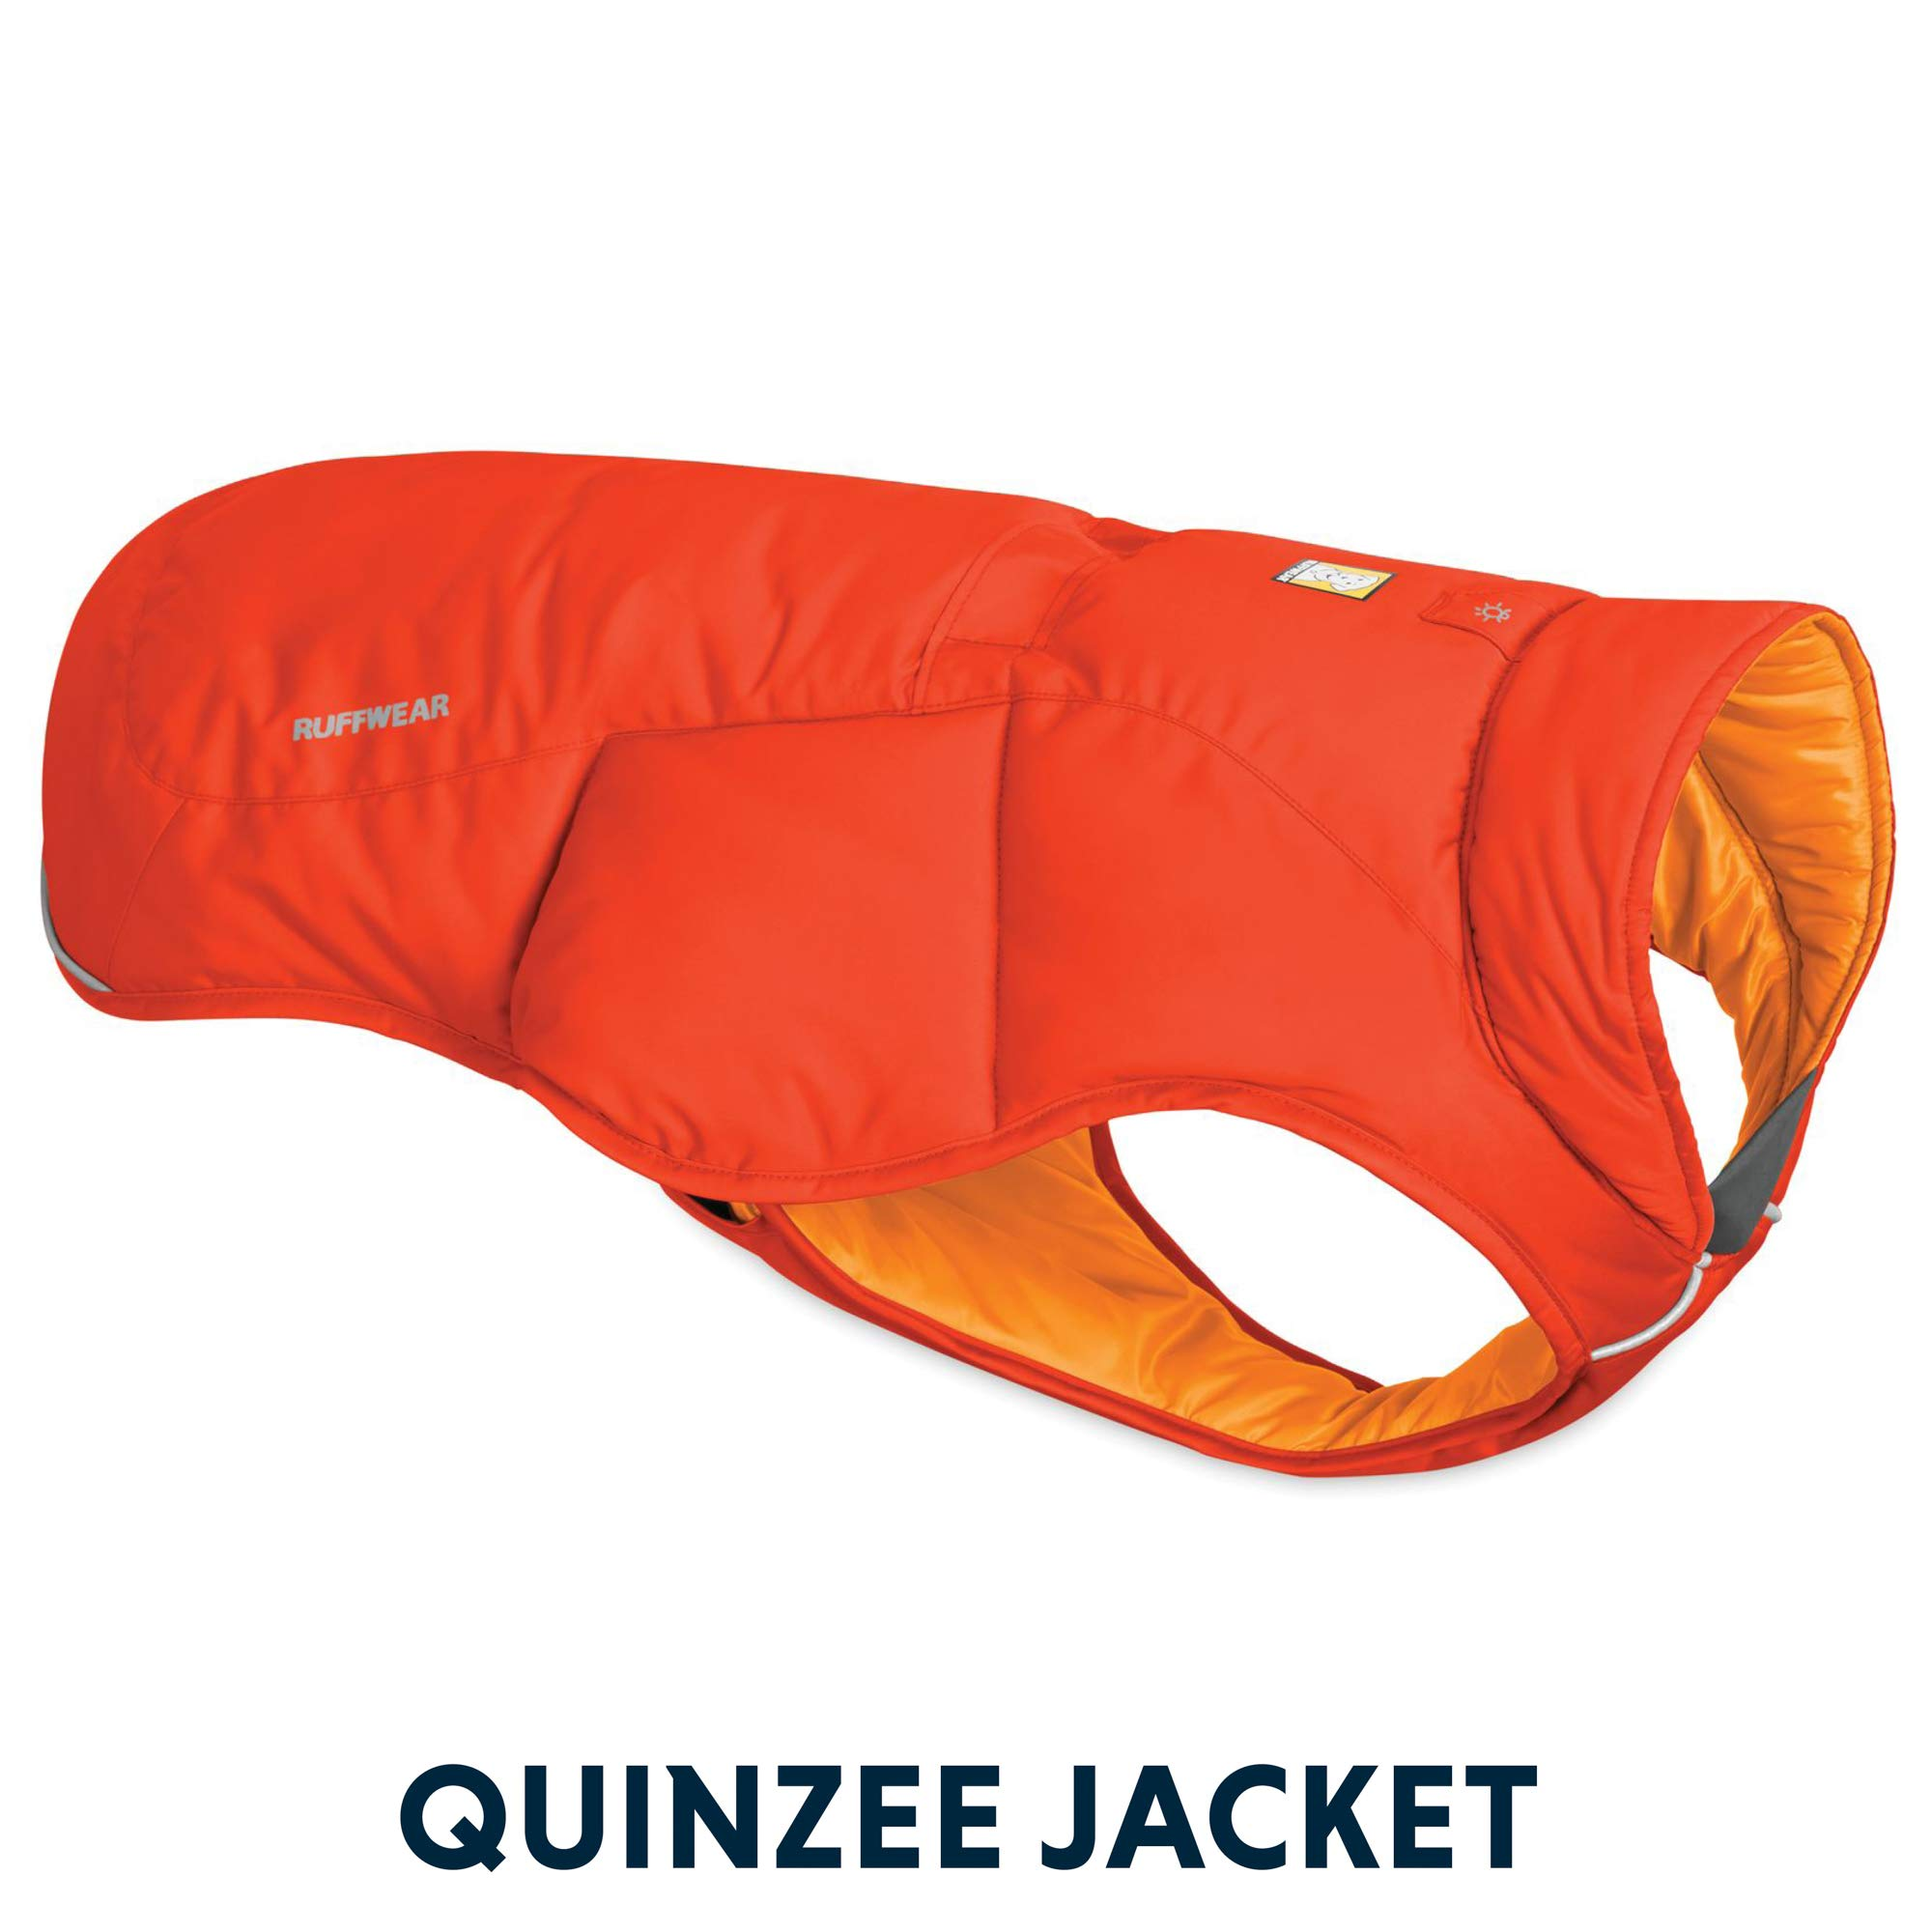 RUFFWEAR - Quinzee Insulated, Water Resistant Jacket for Dogs with Stuff Sack, Sockeye Red, Medium by RUFFWEAR